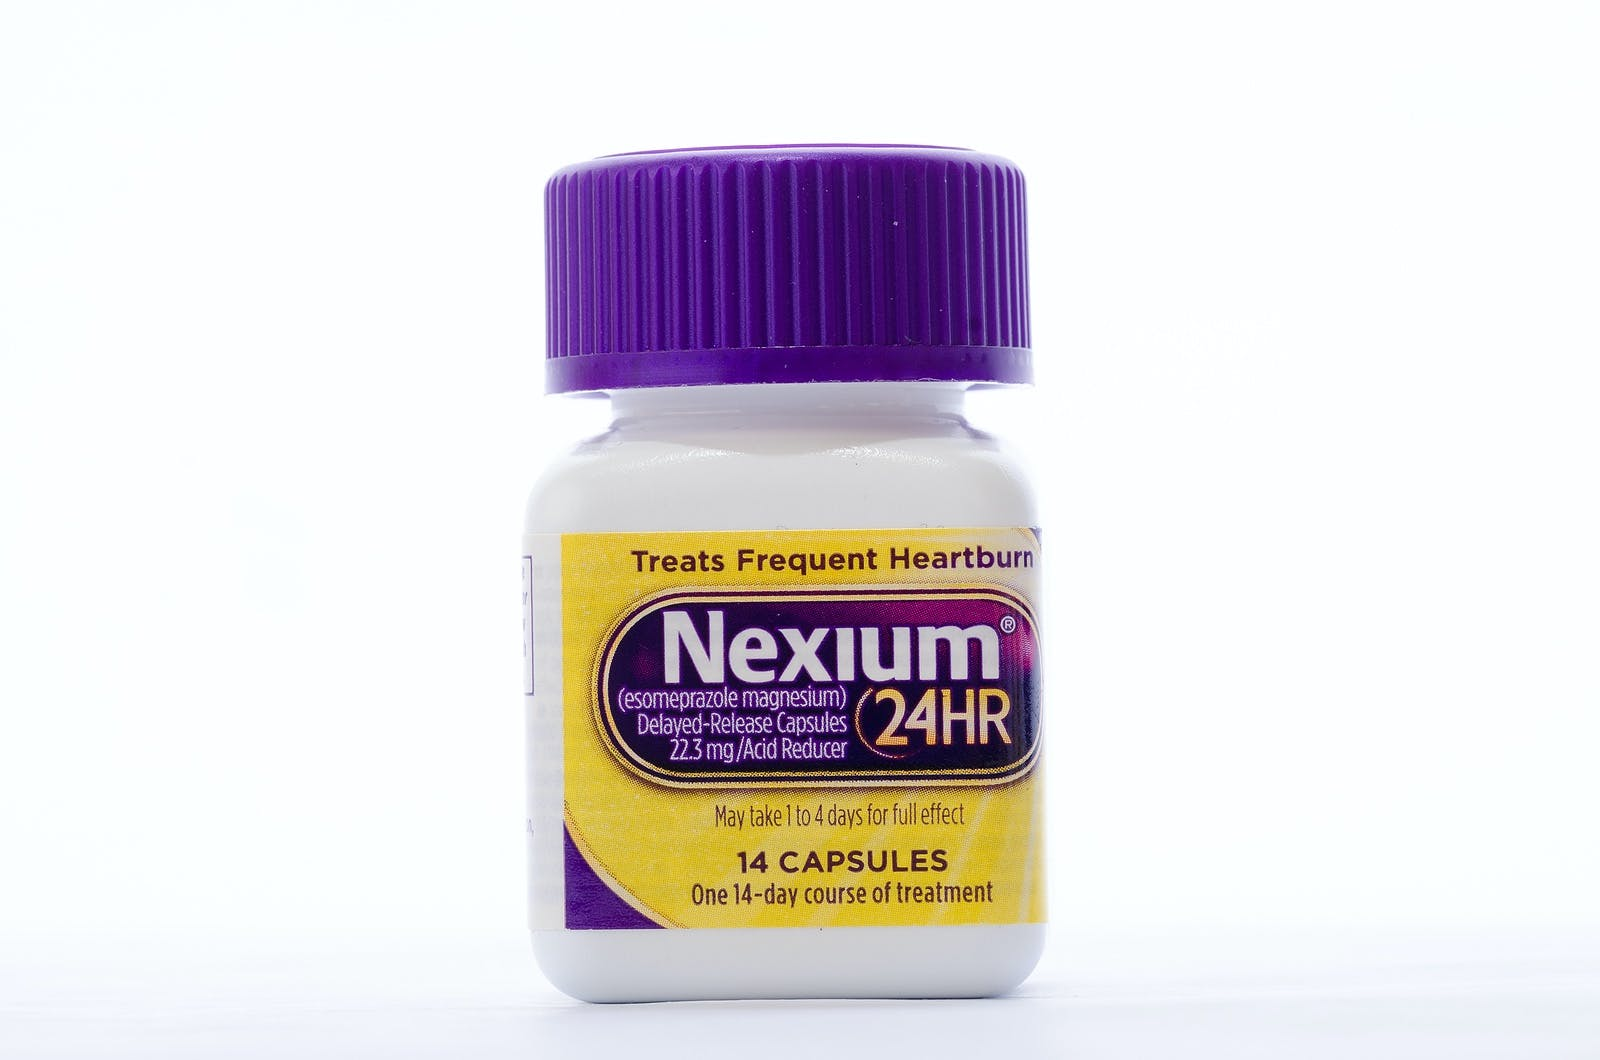 """LLANO TX-AUG 16 2015: Bottle of Nexium against white background. The """"Purple Pill"""" now sold in """"Non-Prescription"""" size dosage."""